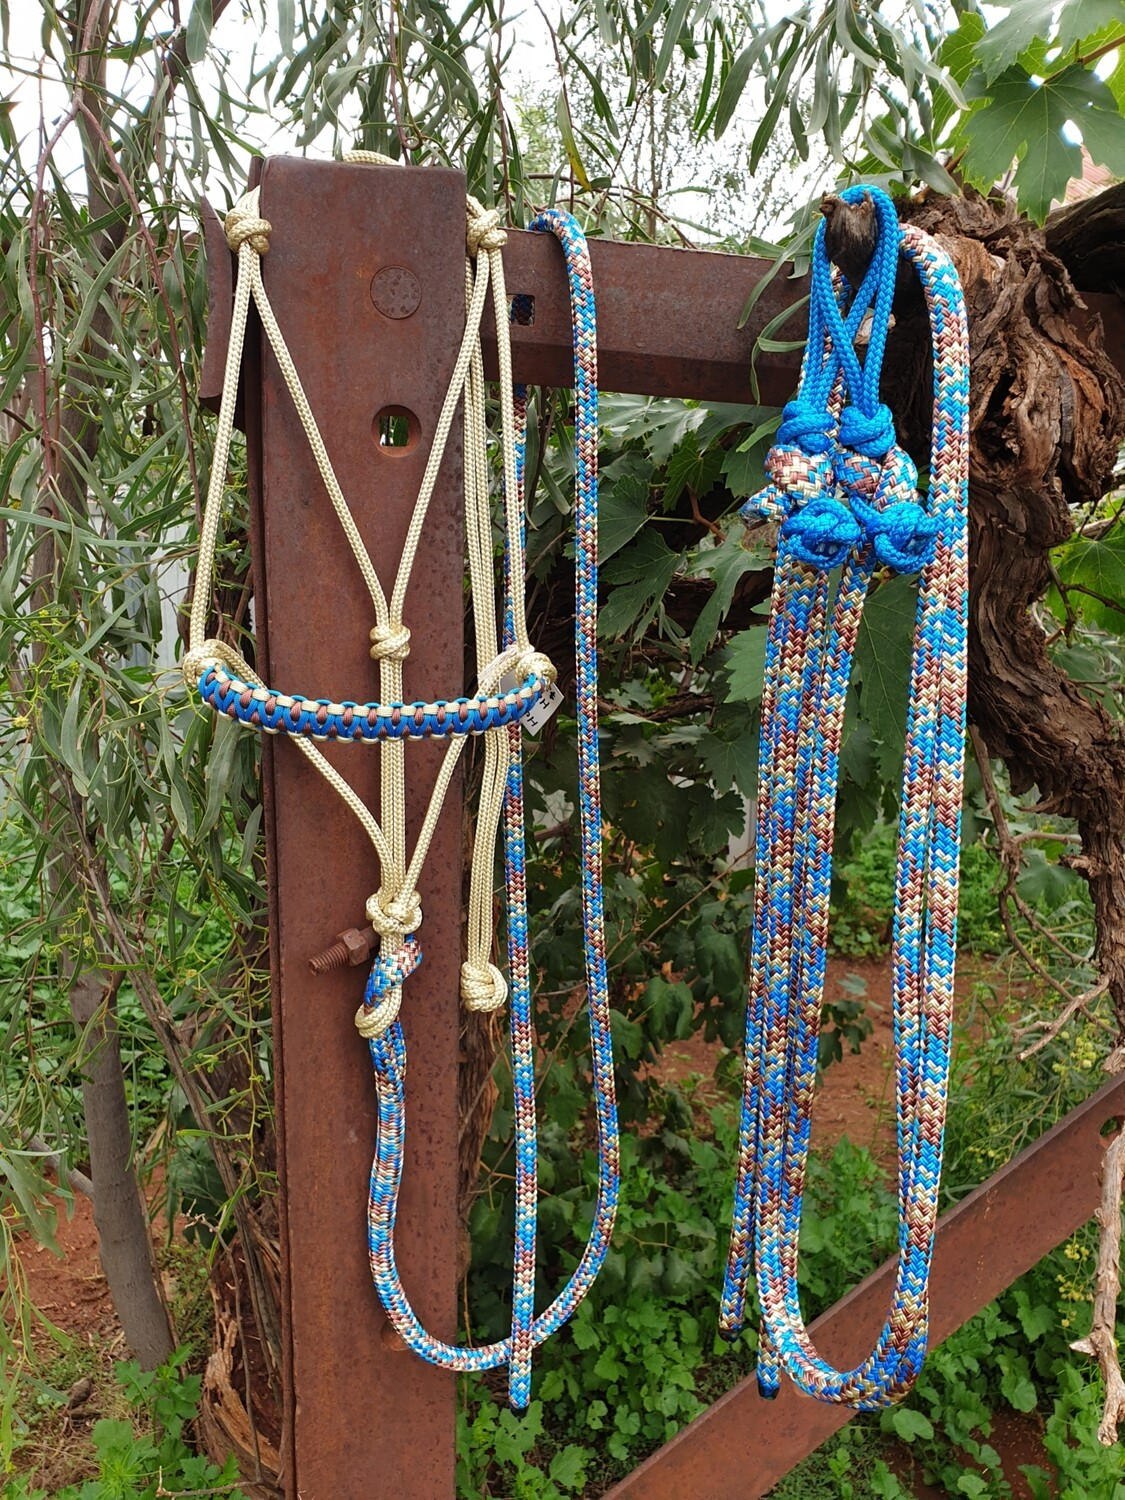 Drakon Beige/Blue/Brown Rope Halter, Lead and Rope Reins Set